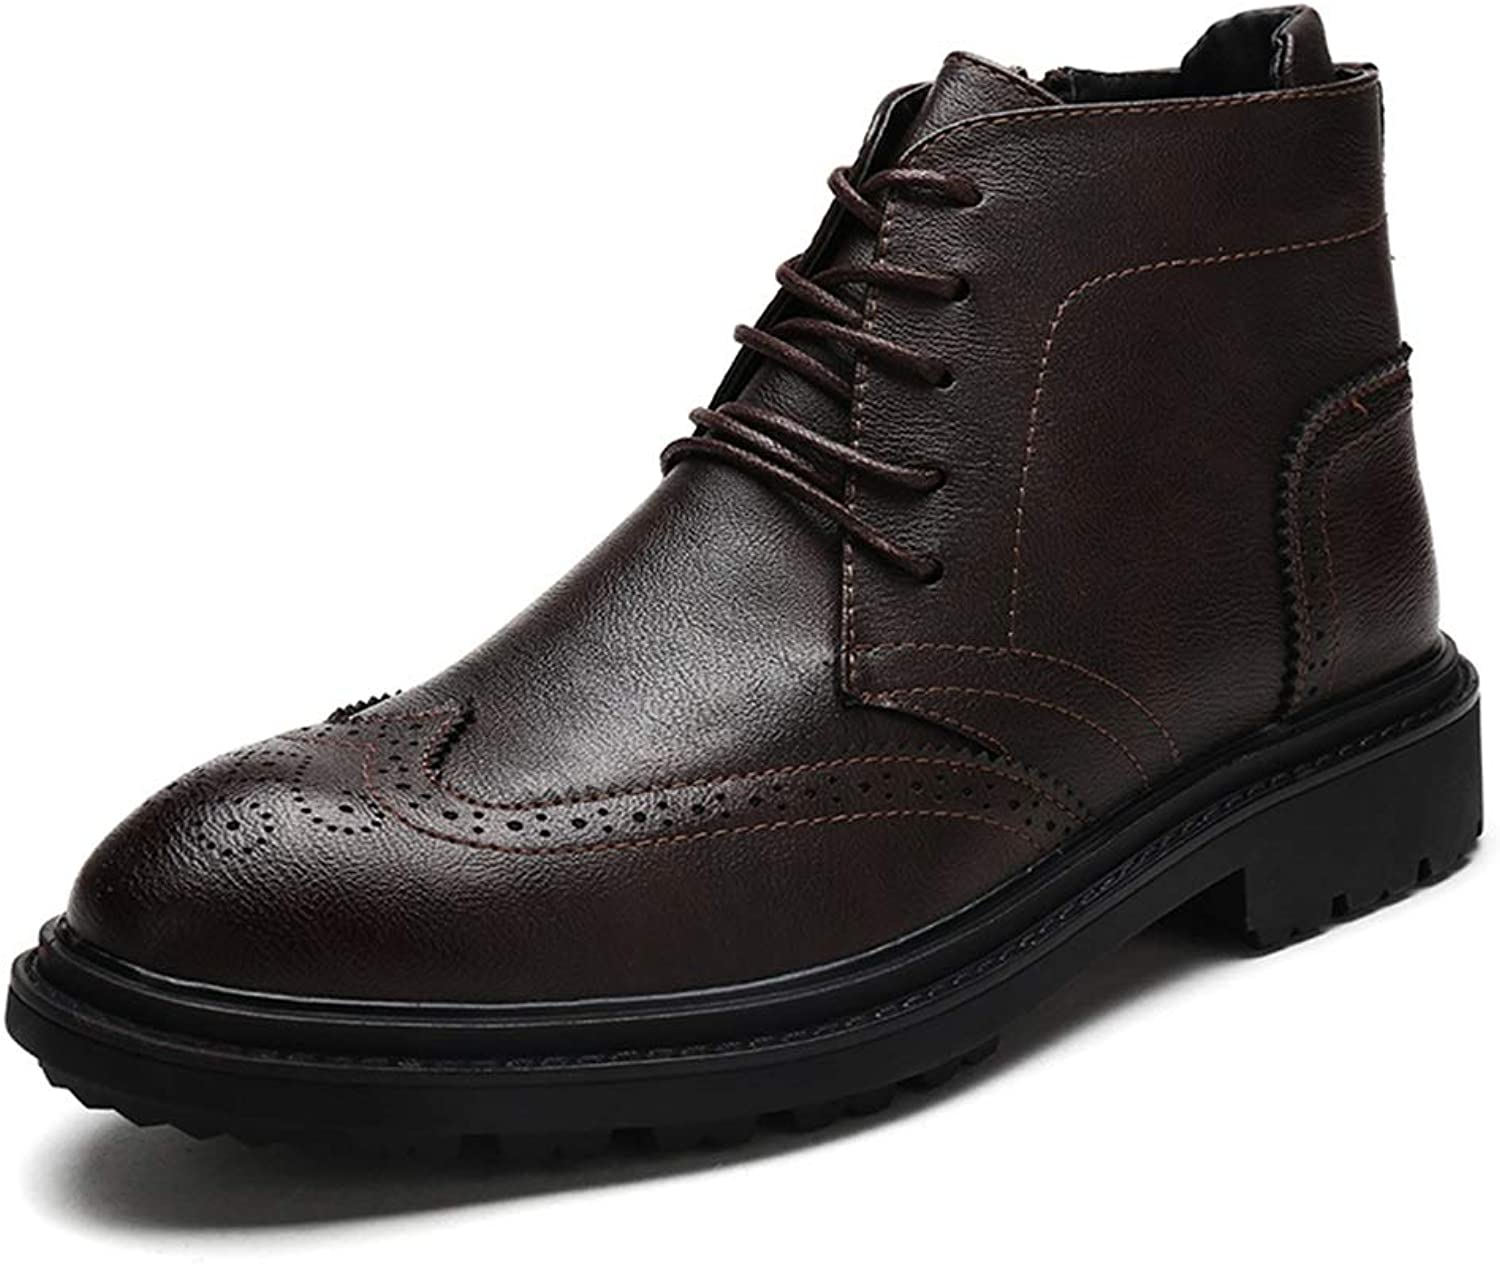 Men's Ankle Work Boot Casual Height Increasing Insole Retro Brogue High Top Boot (color   Brown, Size   5.5 UK)